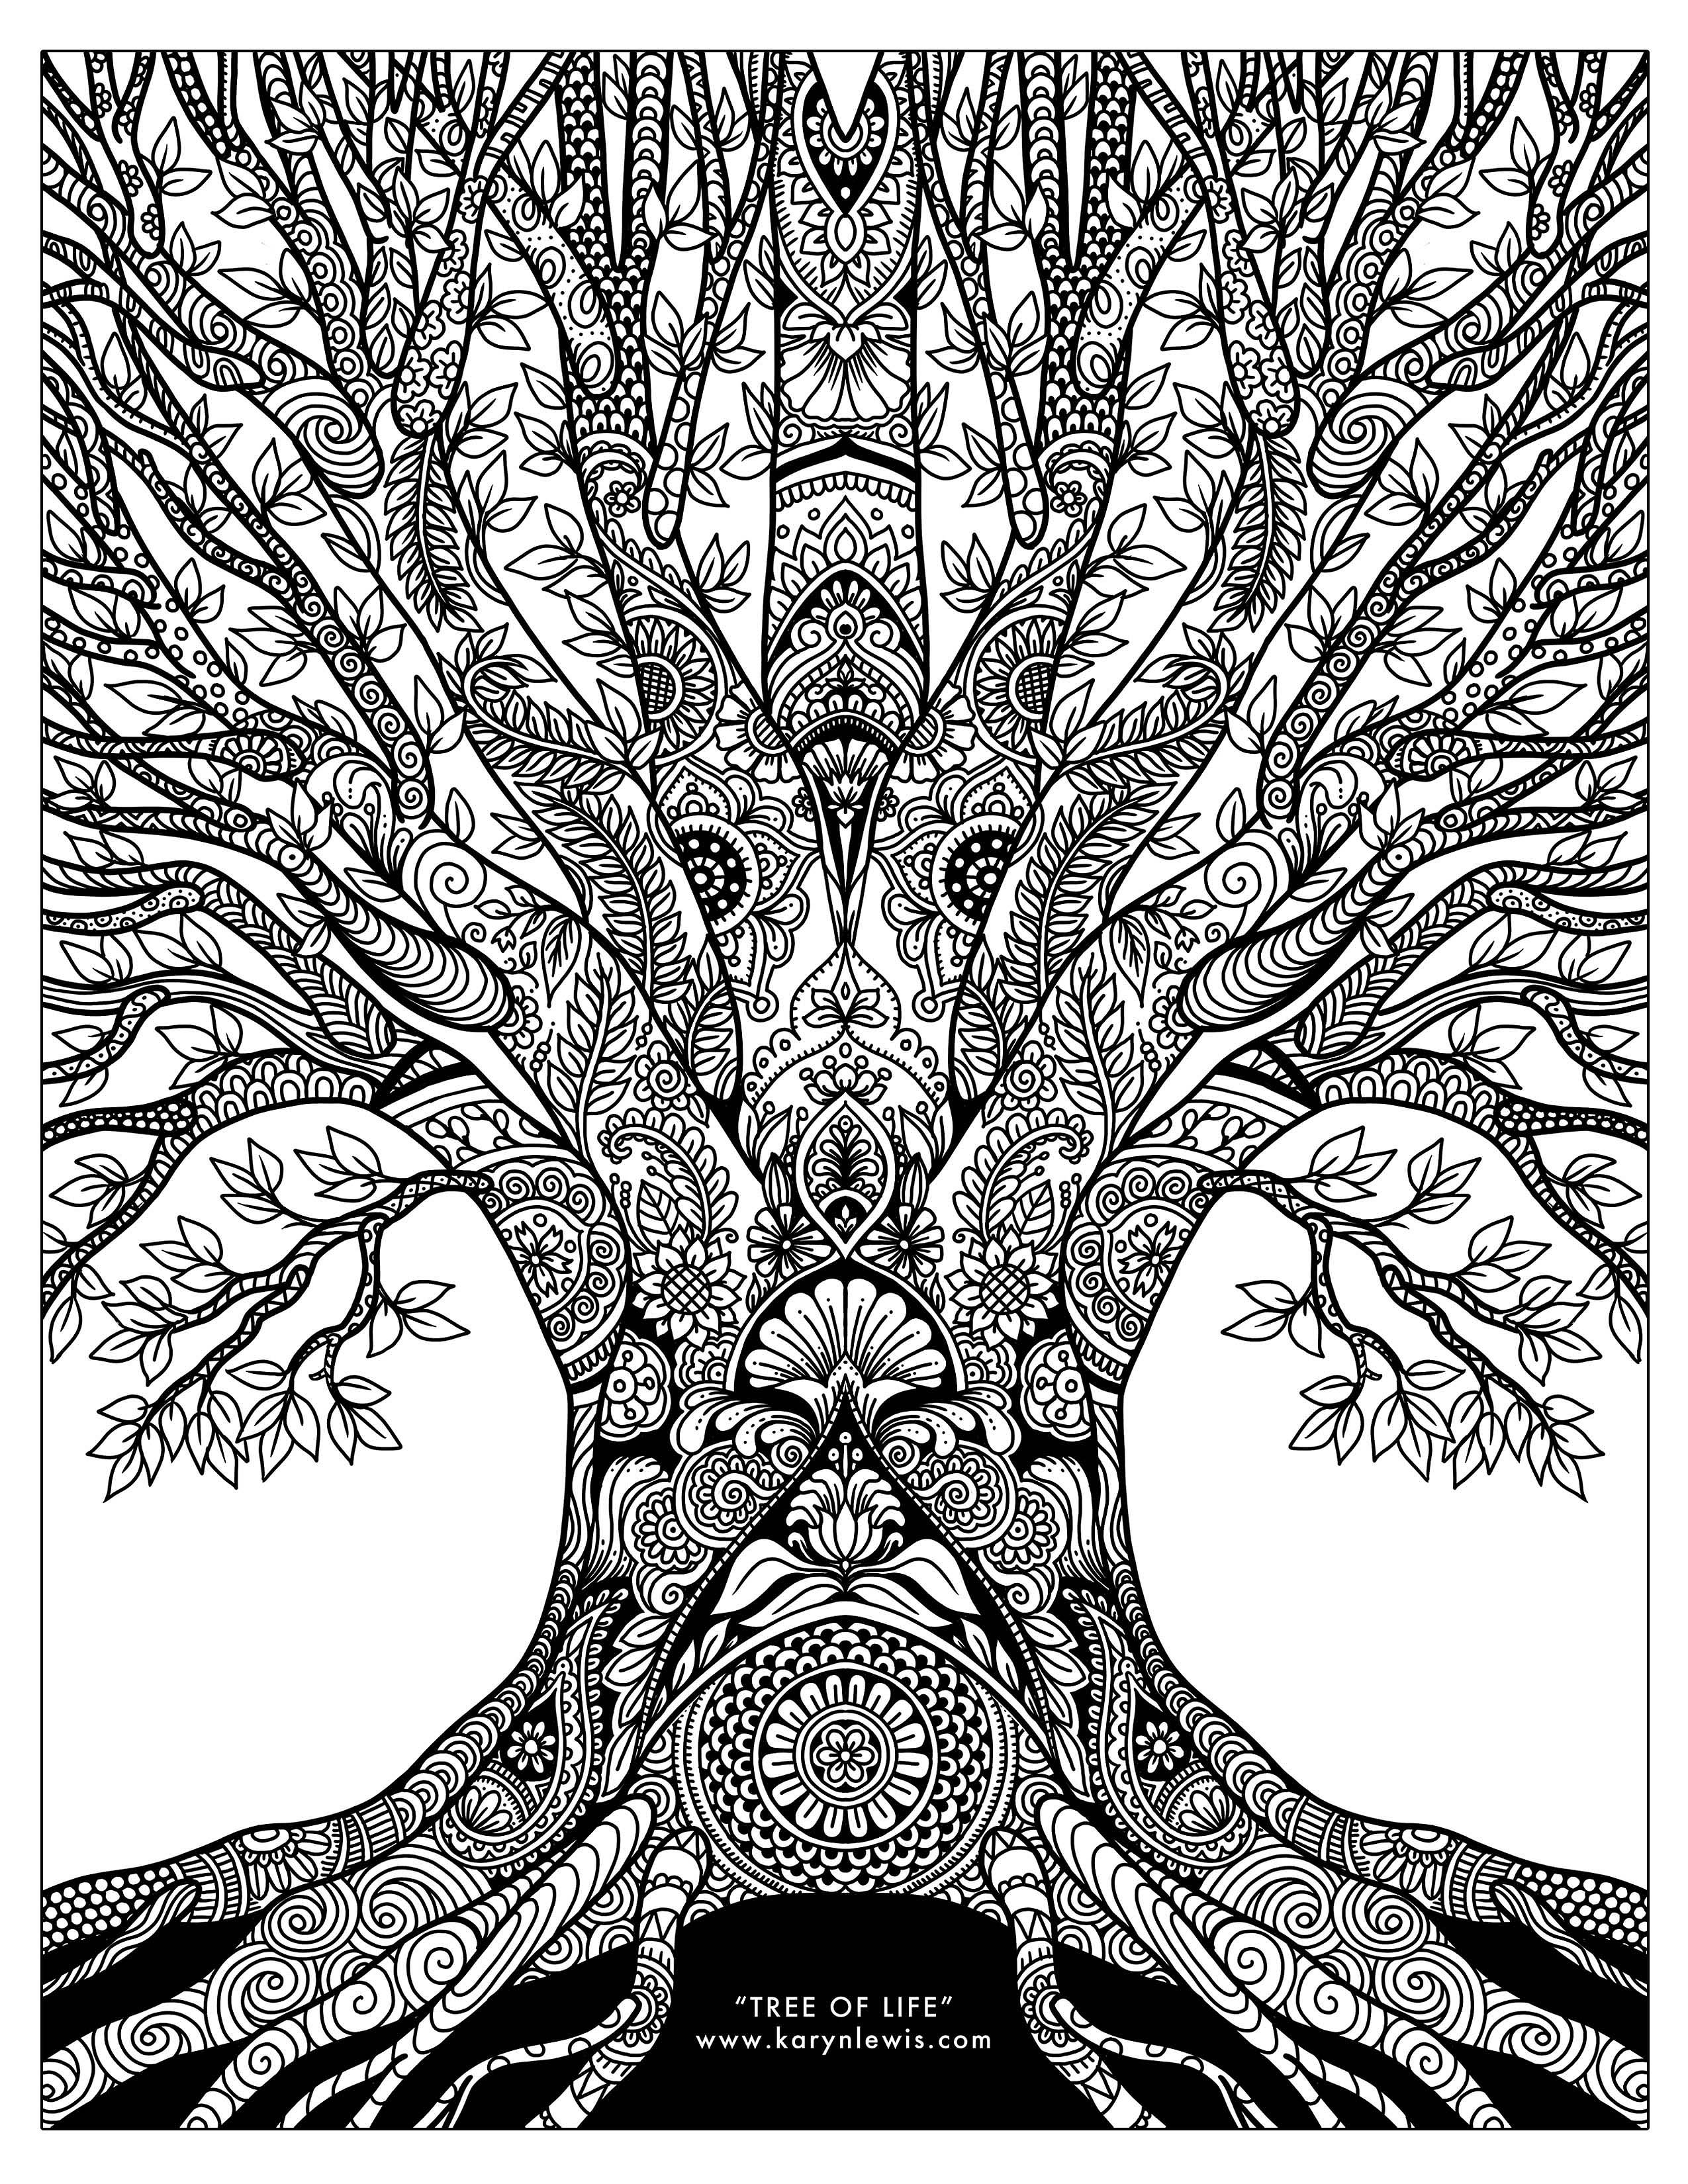 Doodle Art Coloring Pages Tree Of Life Doodle Art Free Adult Coloring Page Karyn Lewis